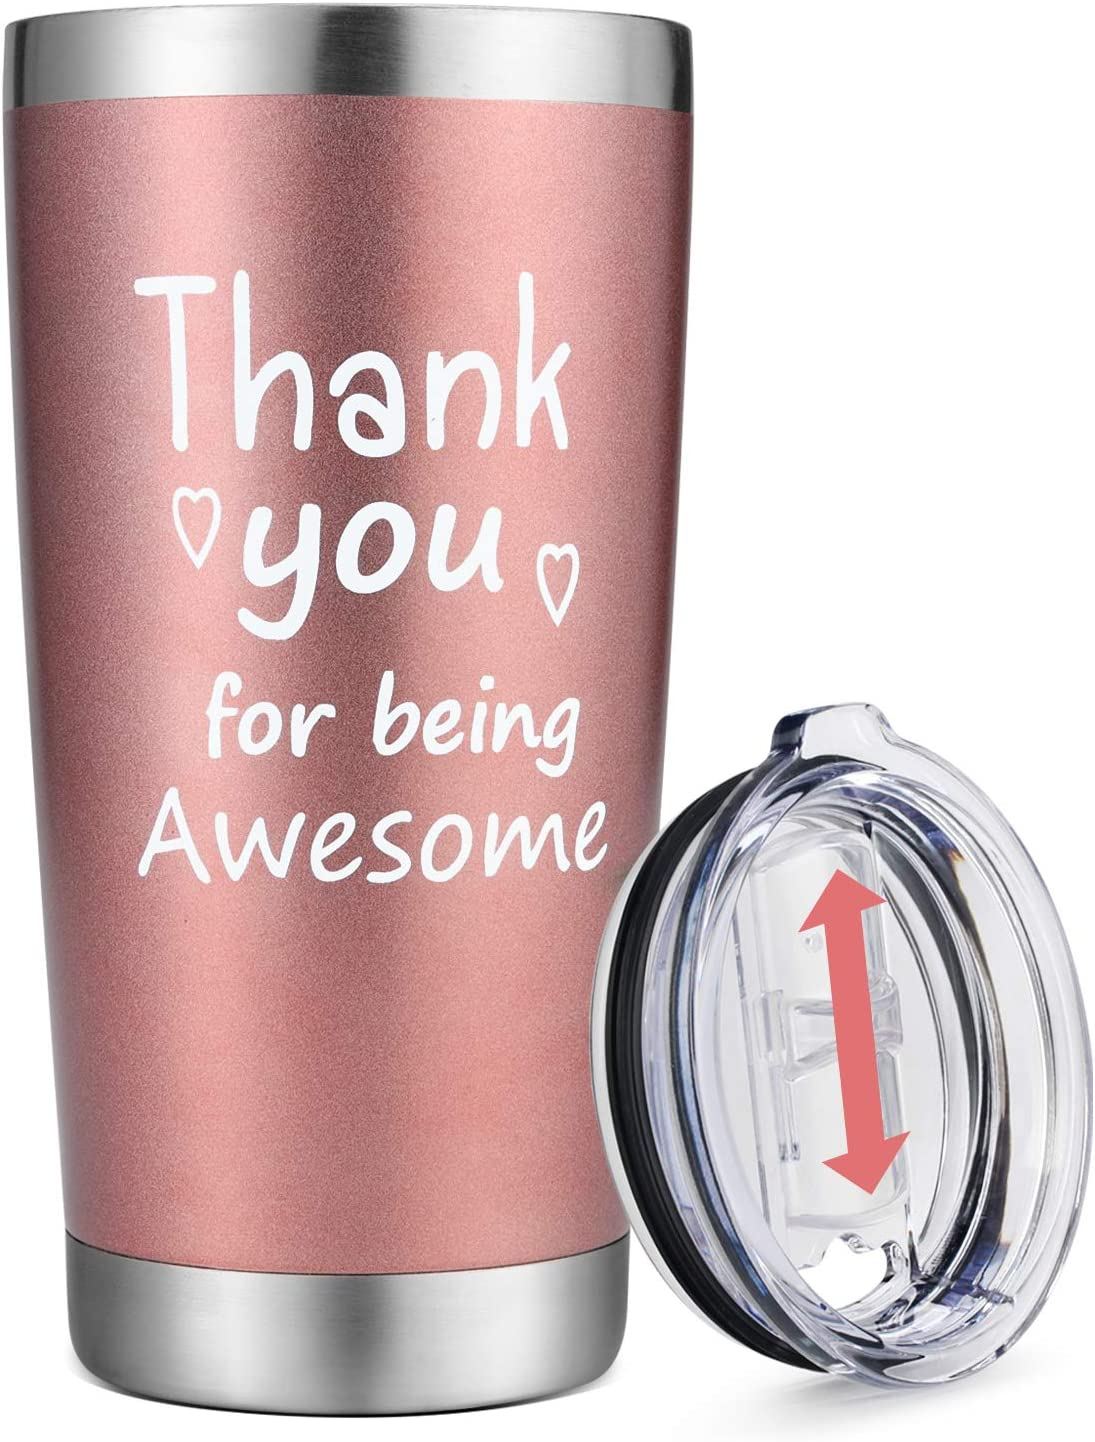 HULASO Thank You Gifts for Women - Christmas Thanksgiving Gifts, Appreciation Gifts Wine Tumbler- Gift Idea for Him, Her, Mom, Wife, Boss, Sister, Best Friend - Birthday Gifts for Coworker -20 oz Cup